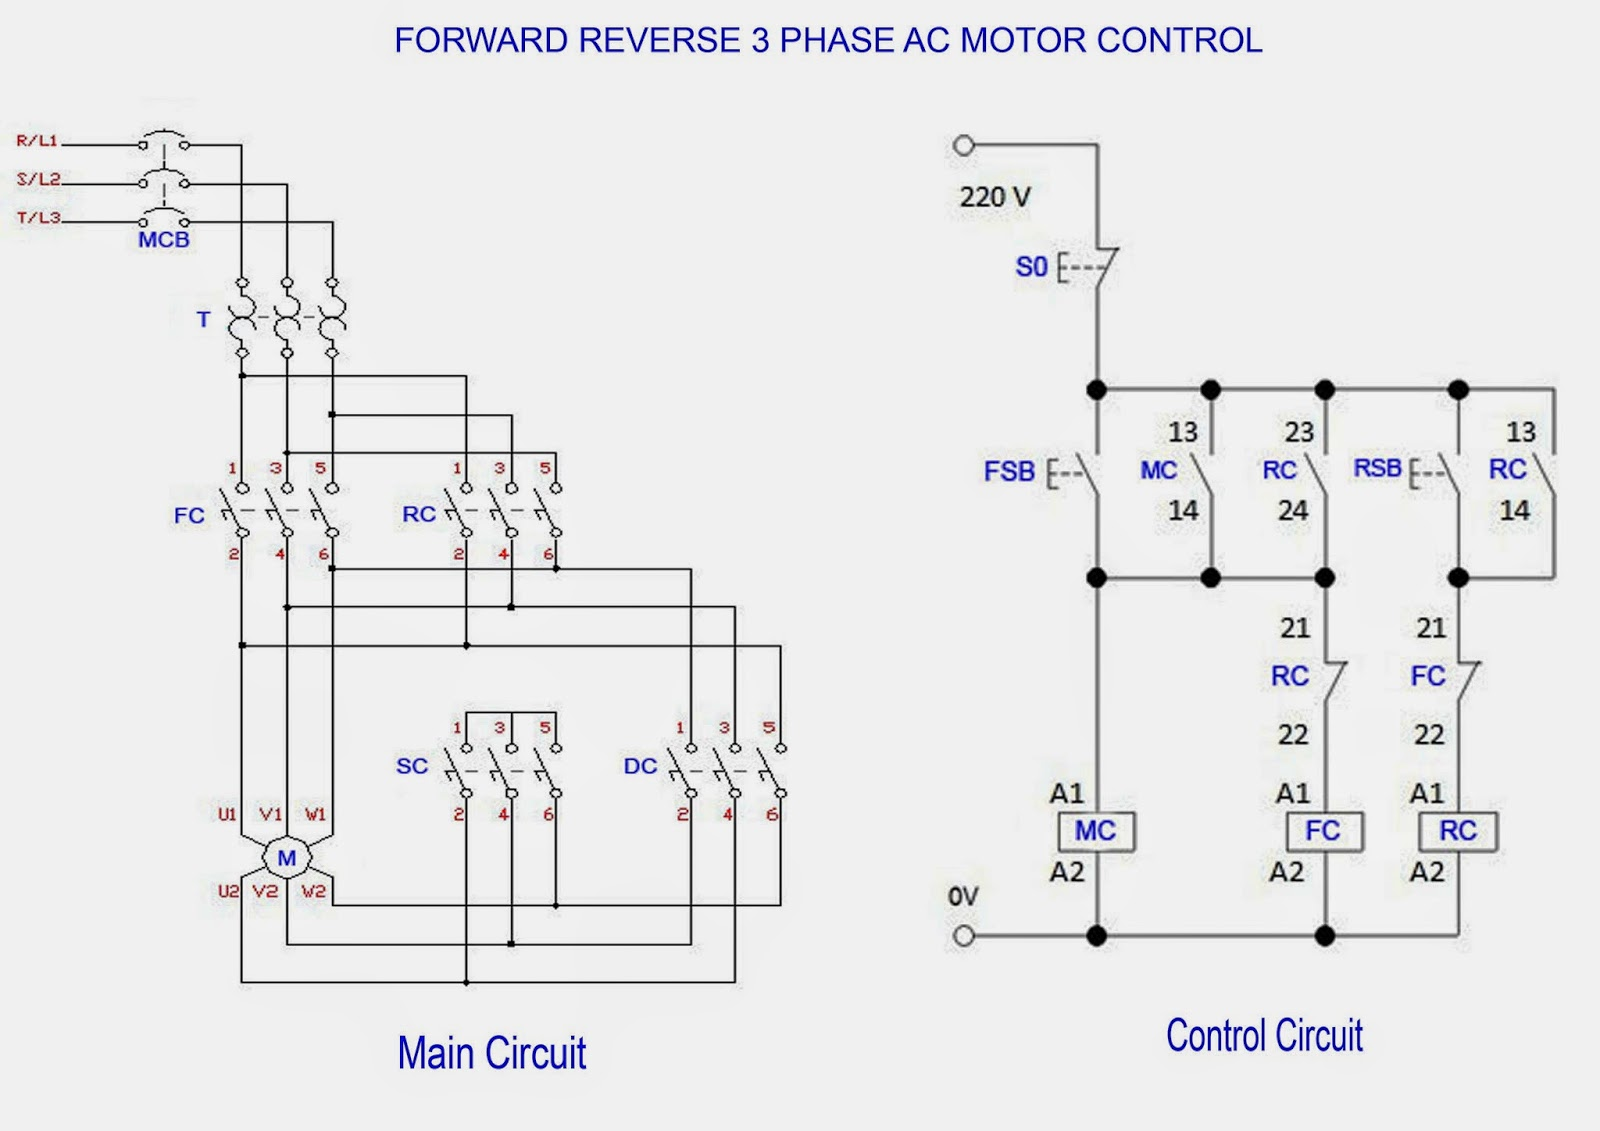 Forward Reverse Switch Wiring Diagram Gfs Tele 3 Phase Ac Motor Control Star Delta